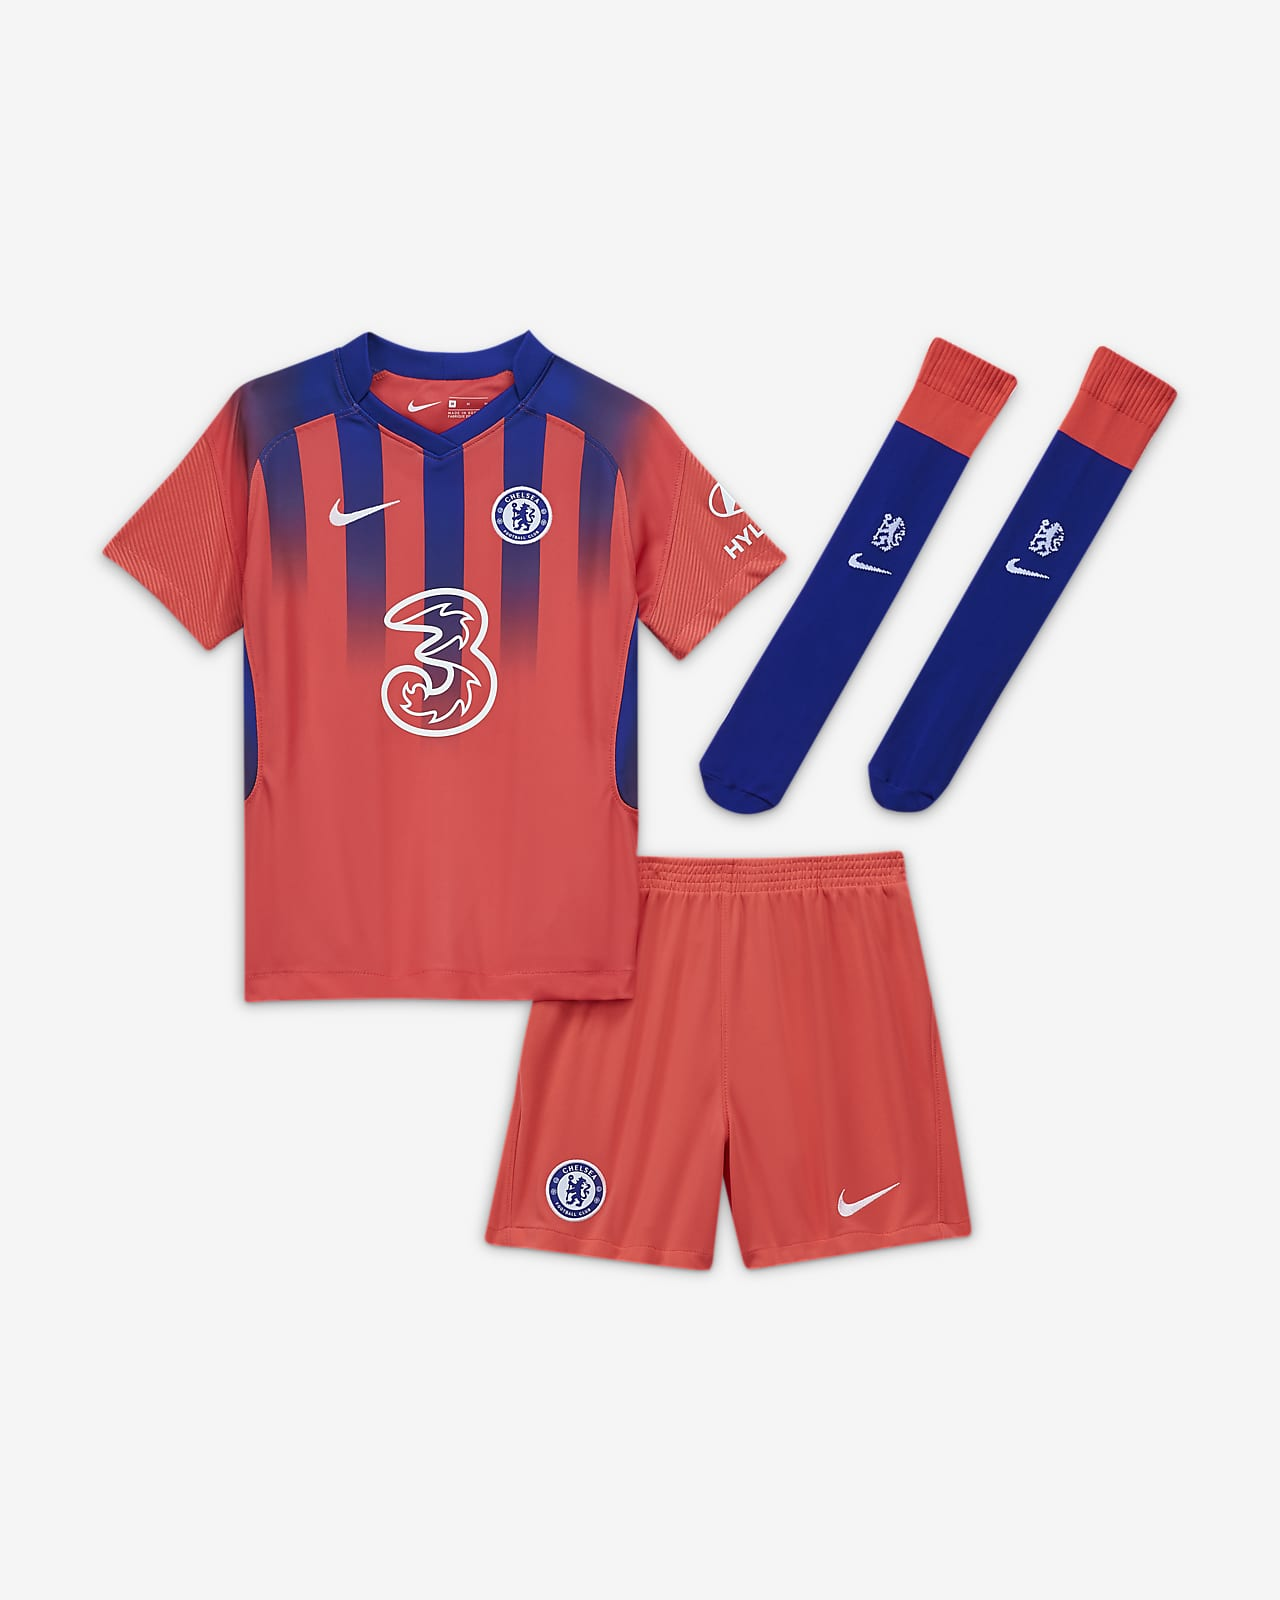 Chelsea F.C. 2020/21 Third Younger Kids' Football Kit